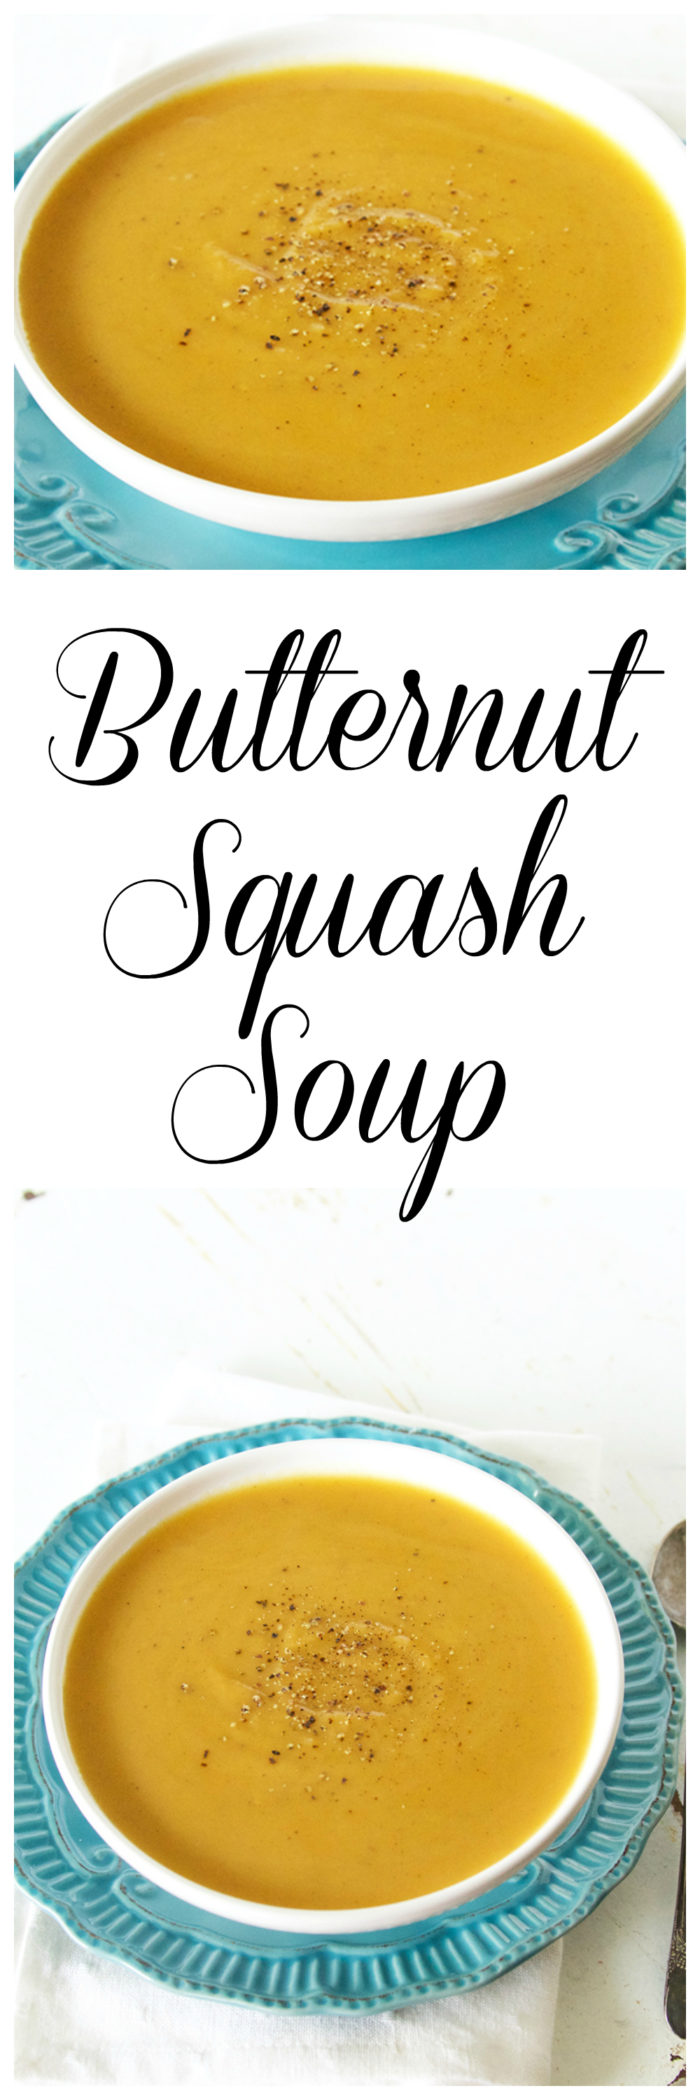 Butternut Squash Soup on www.cookingwithruthie.com is the perfect recipe to keep you warm and cozy this fall and winter!